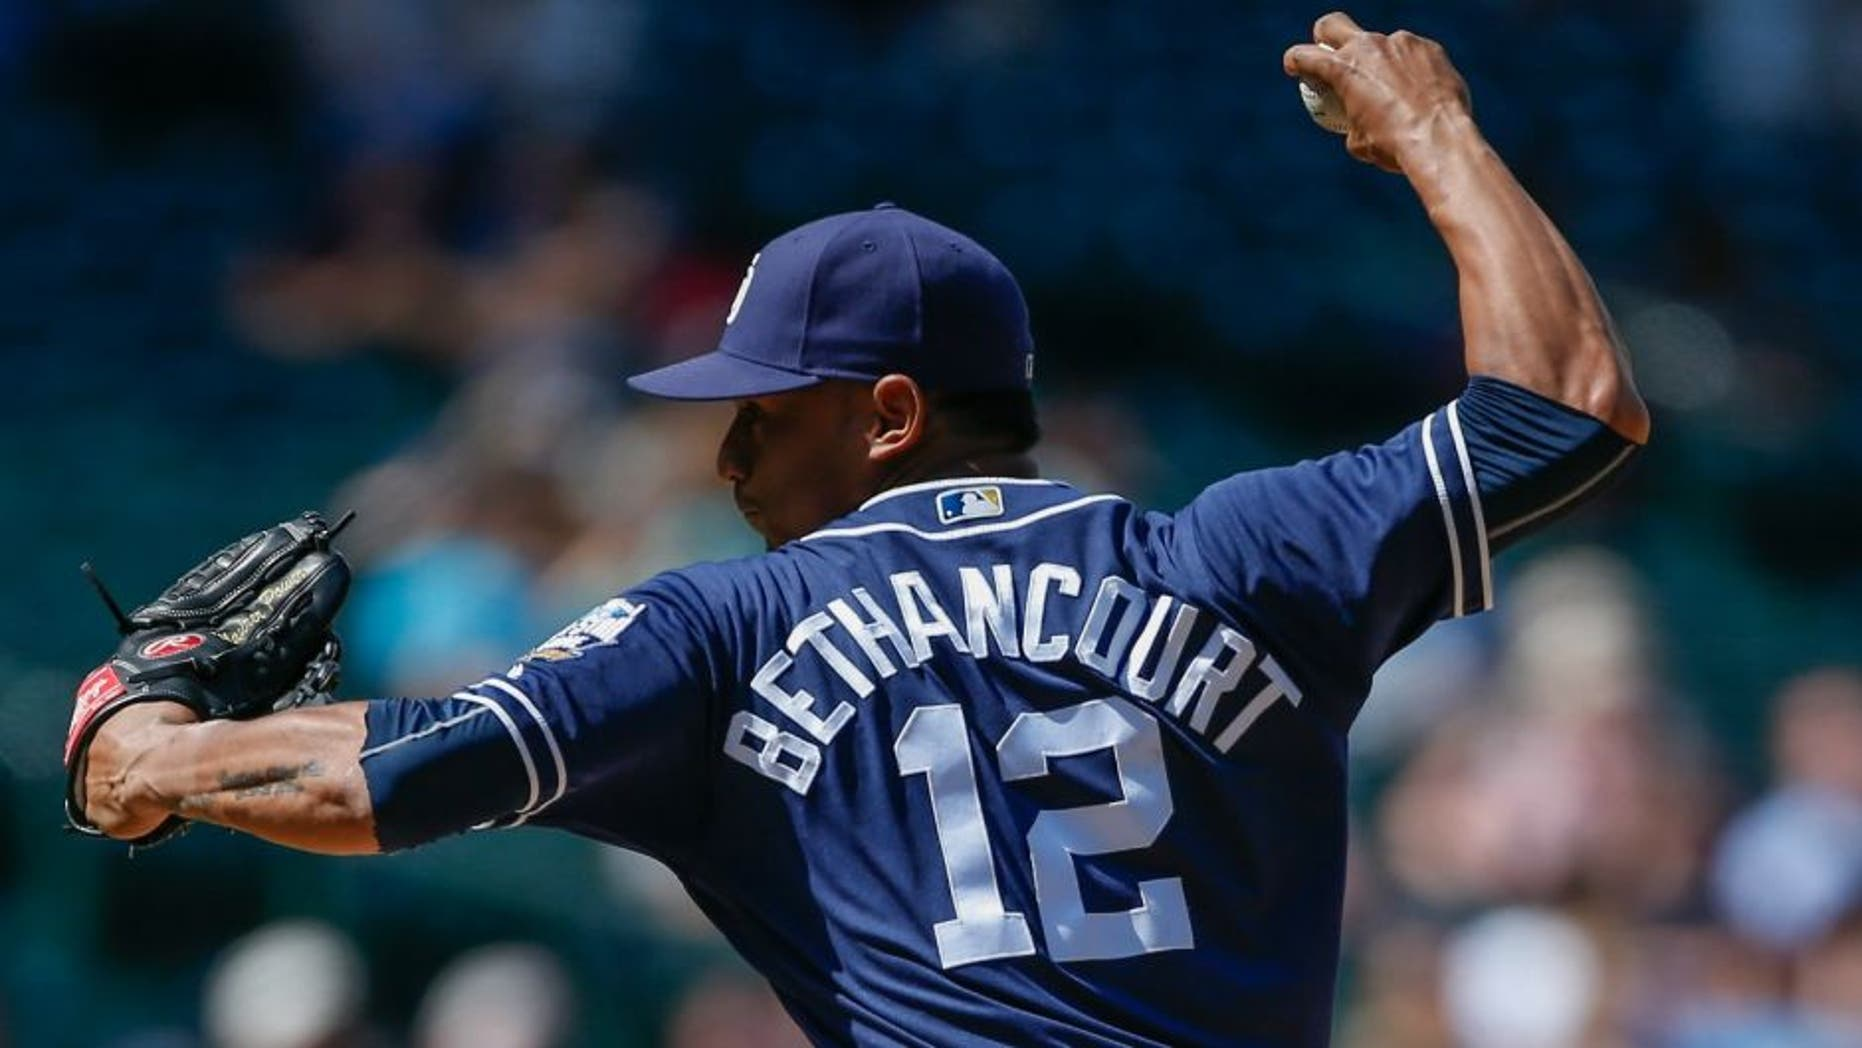 SEATTLE, WA - MAY 31: Starting catcher Christian Bethancourt #12 of the San Diego Padres makes an appearance as a relief pitcher against the Seattle Mariners in the eighth inning at Safeco Field on May 31, 2016 in Seattle, Washington. (Photo by Otto Greule Jr/Getty Images) *** Local Caption *** Christian Bethancourt,SEATTLE, WA - MAY 31: Starting catcher Christian Bethancourt #12 of the San Diego Padres makes an appearance as a relief pitcher against the Seattle Mariners in the eighth inning at Safeco Field on May 31, 2016 in Seattle, Washington. (Photo by Otto Greule Jr/Getty Images)